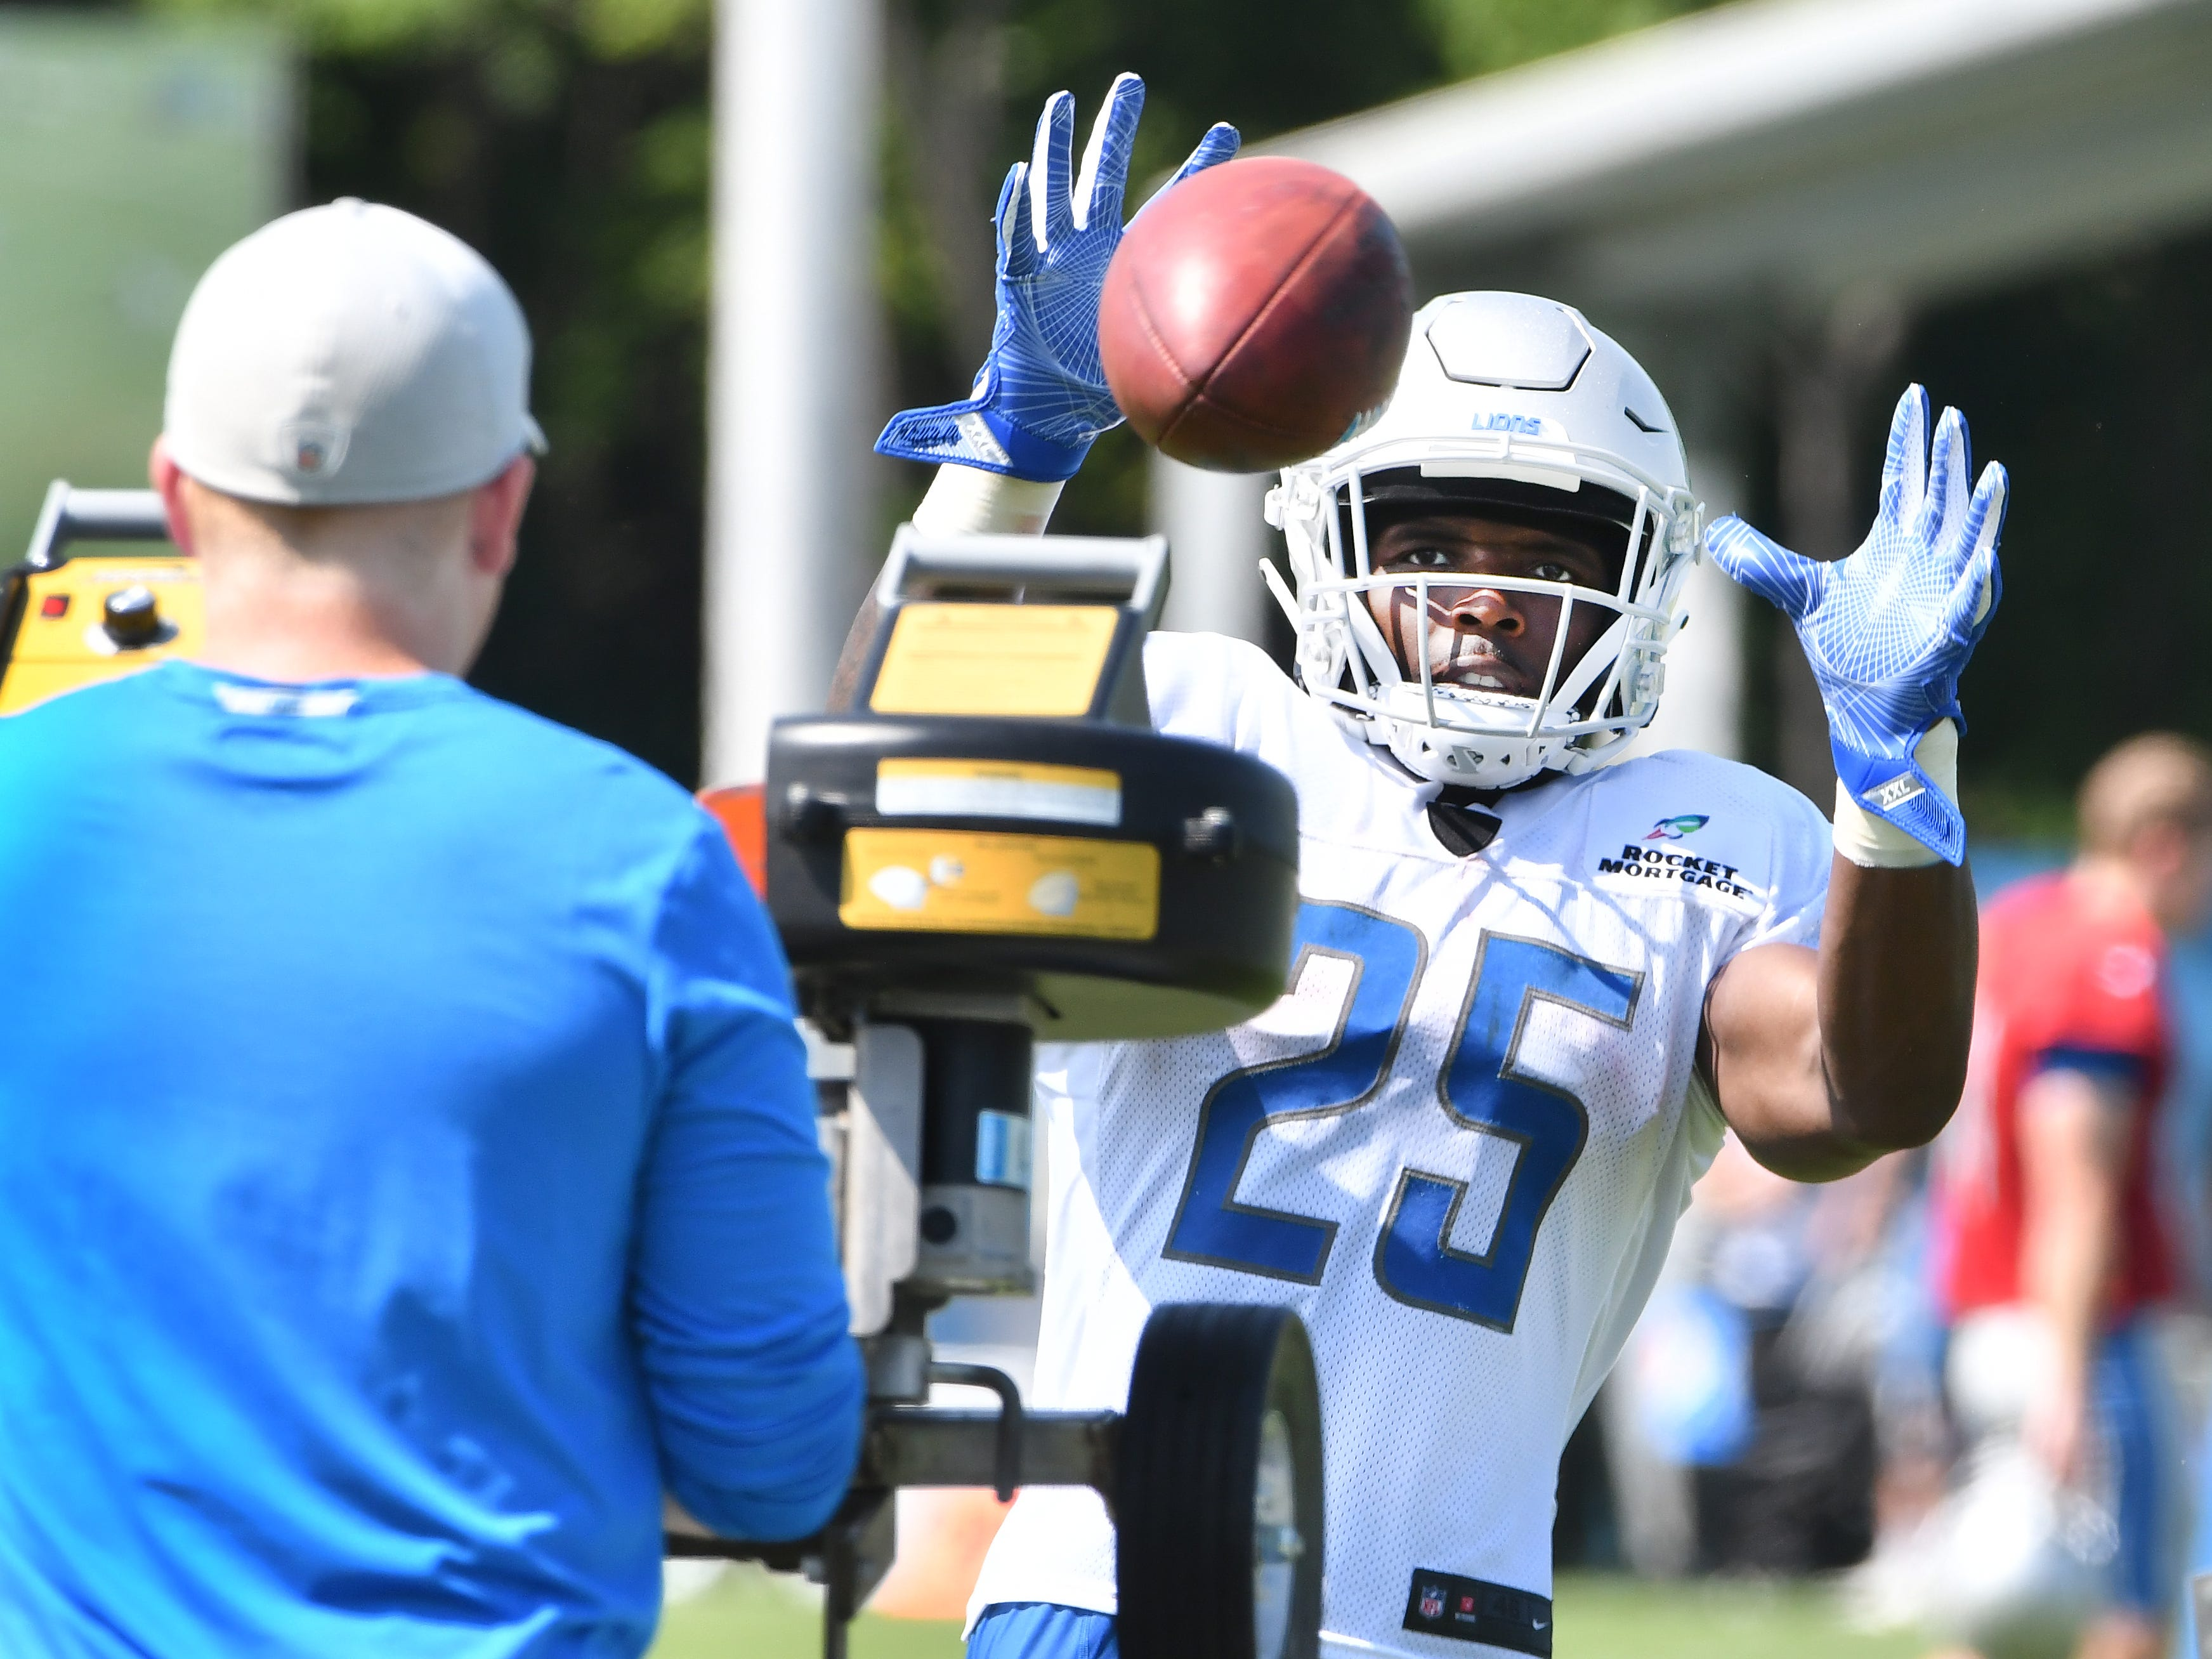 Lions running back Theo Riddick gets up close and personal with the passing machine, taking hard passes just a few feet from the machine at the end of practice.